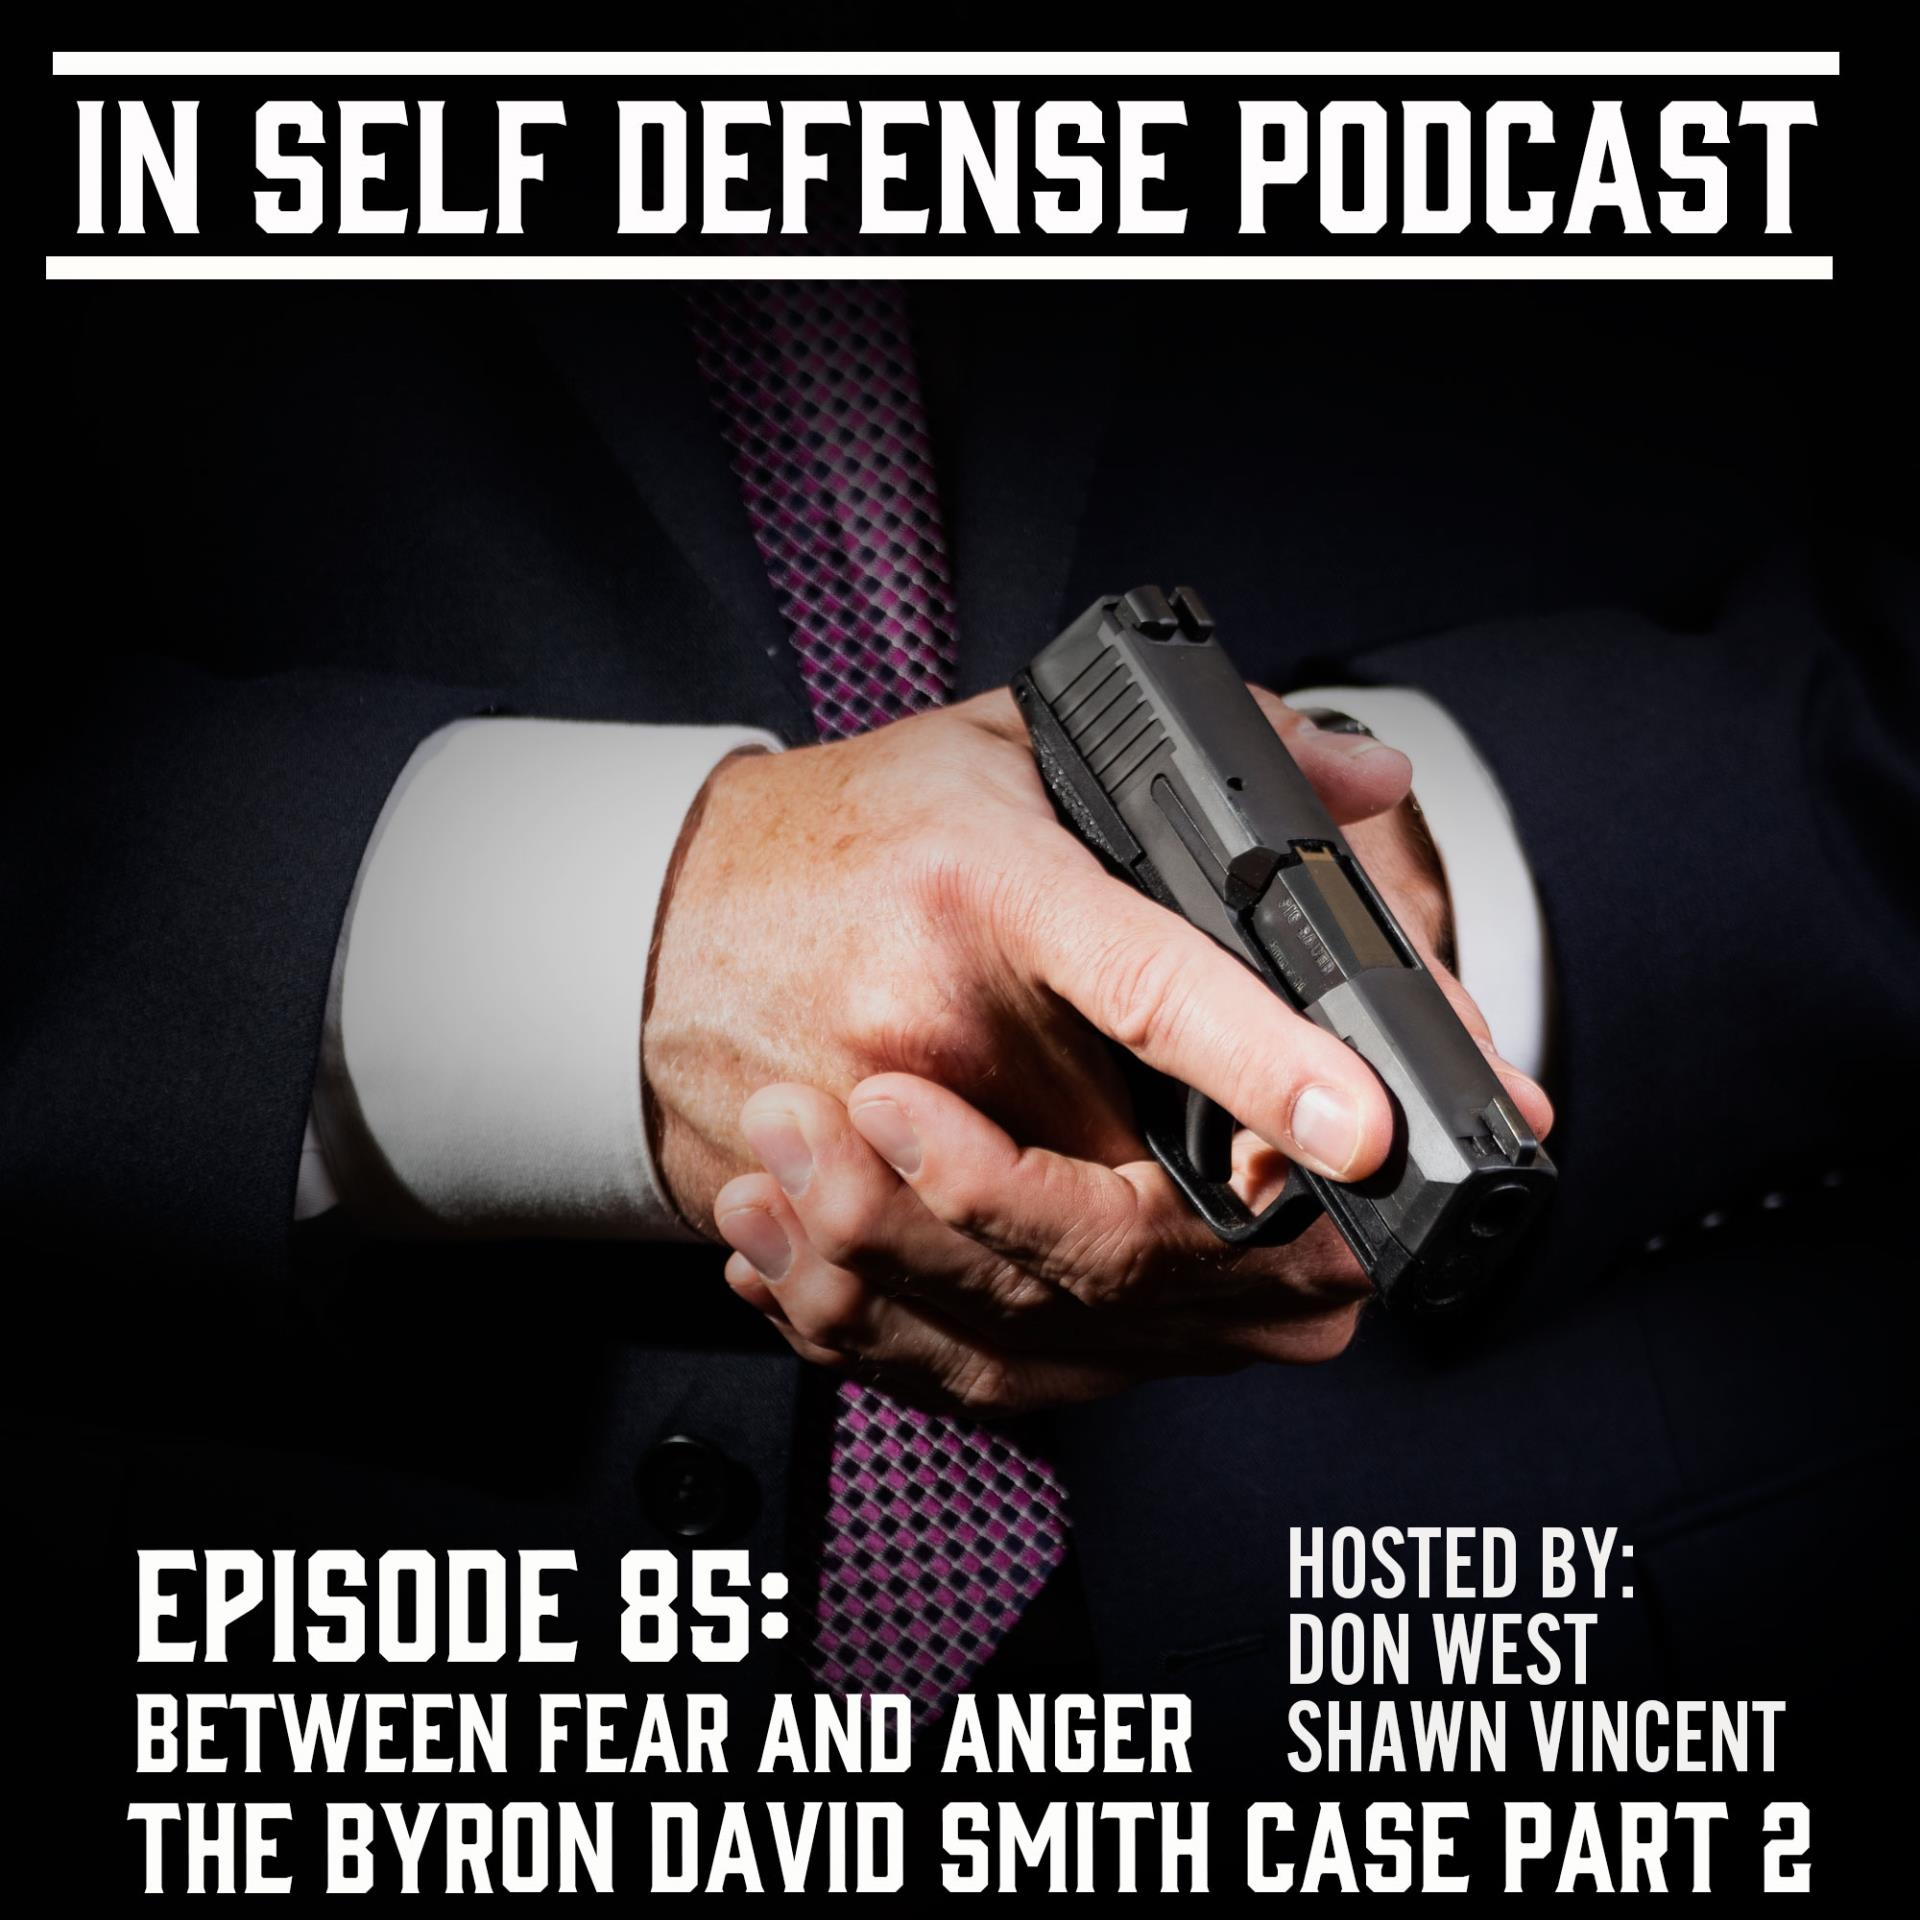 In Self Defense - Episode 85: Between Fear and Anger The Byron David Smith Case Part 2